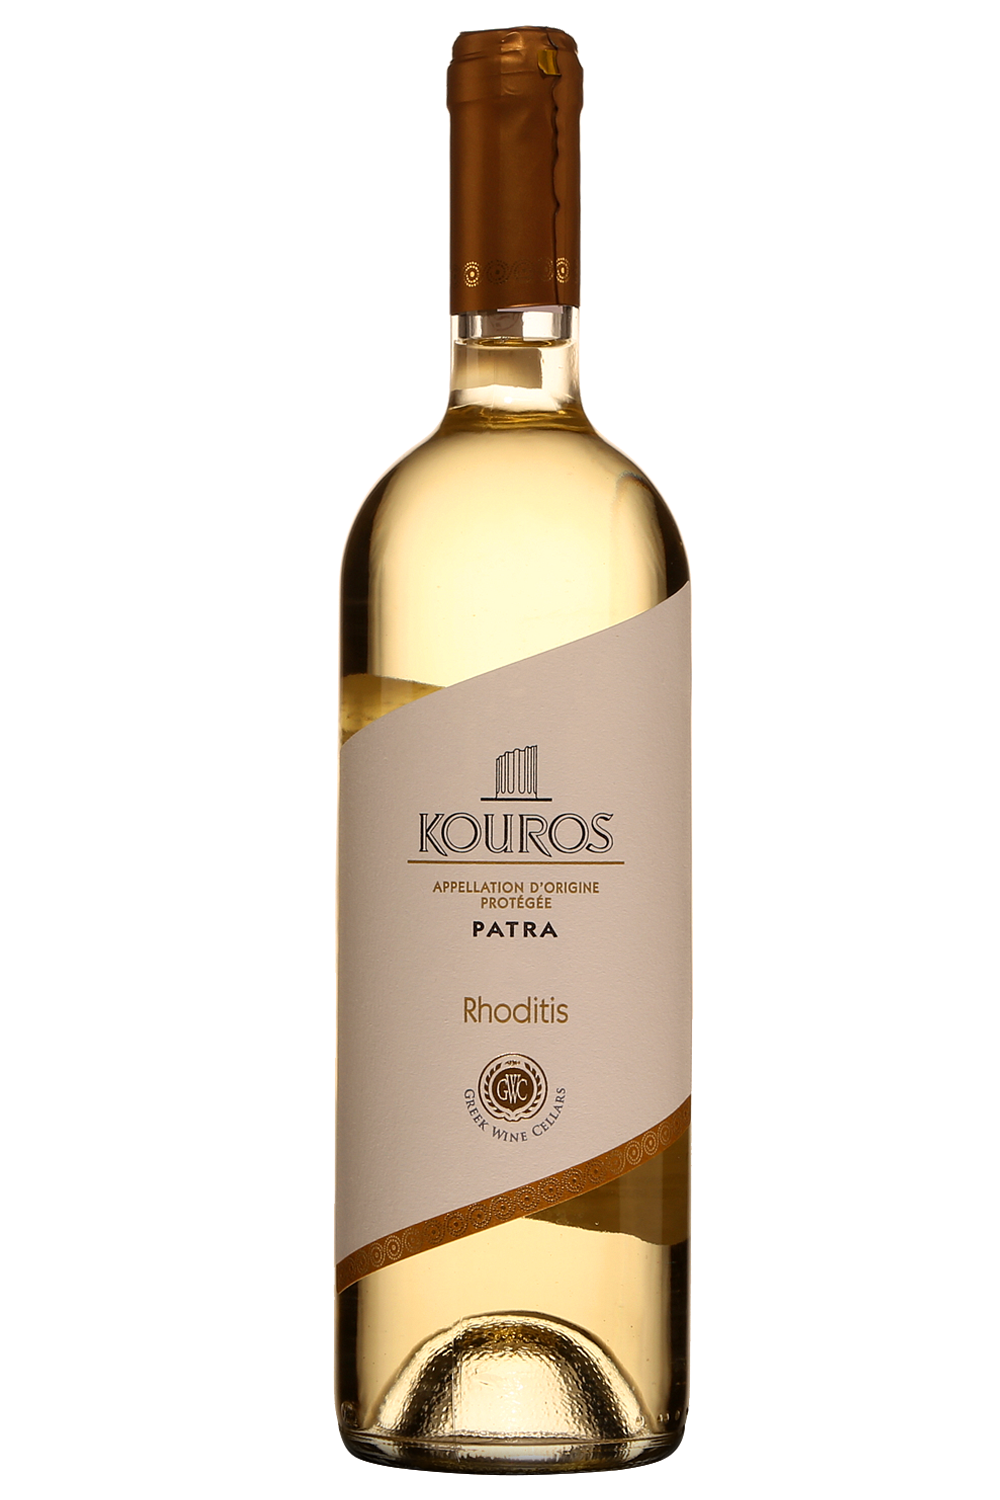 Kouros Patras Rhoditis Greek White Wine 750ml